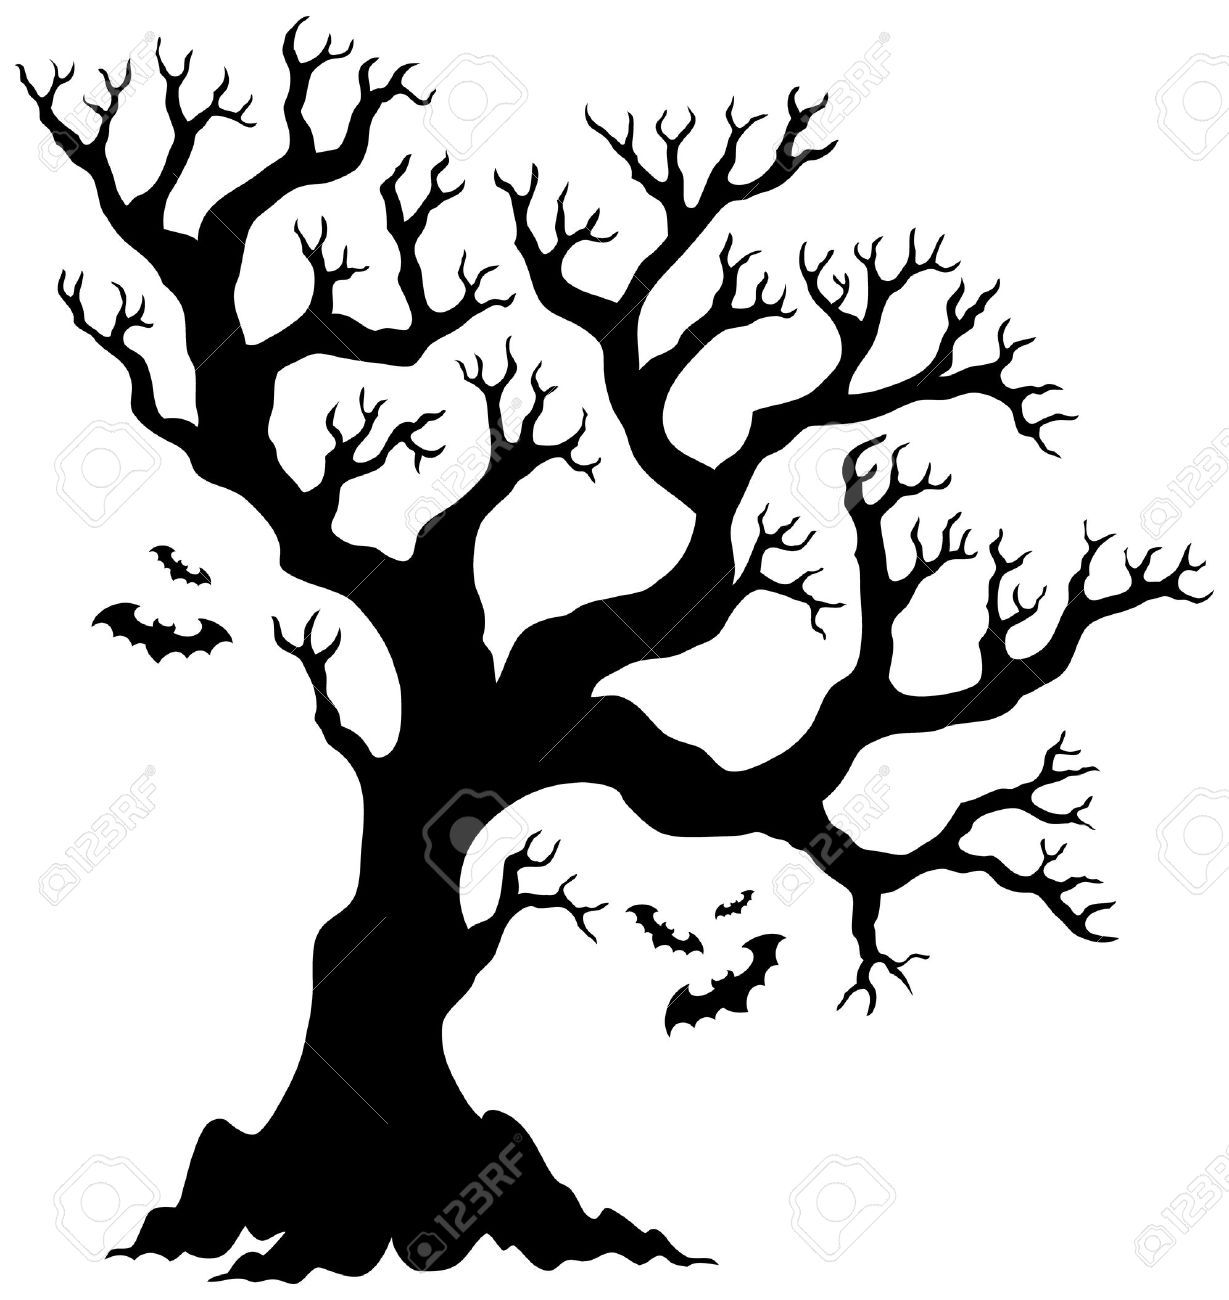 silhouette halloween tree with bats royalty free cliparts vectors  [ 1229 x 1300 Pixel ]